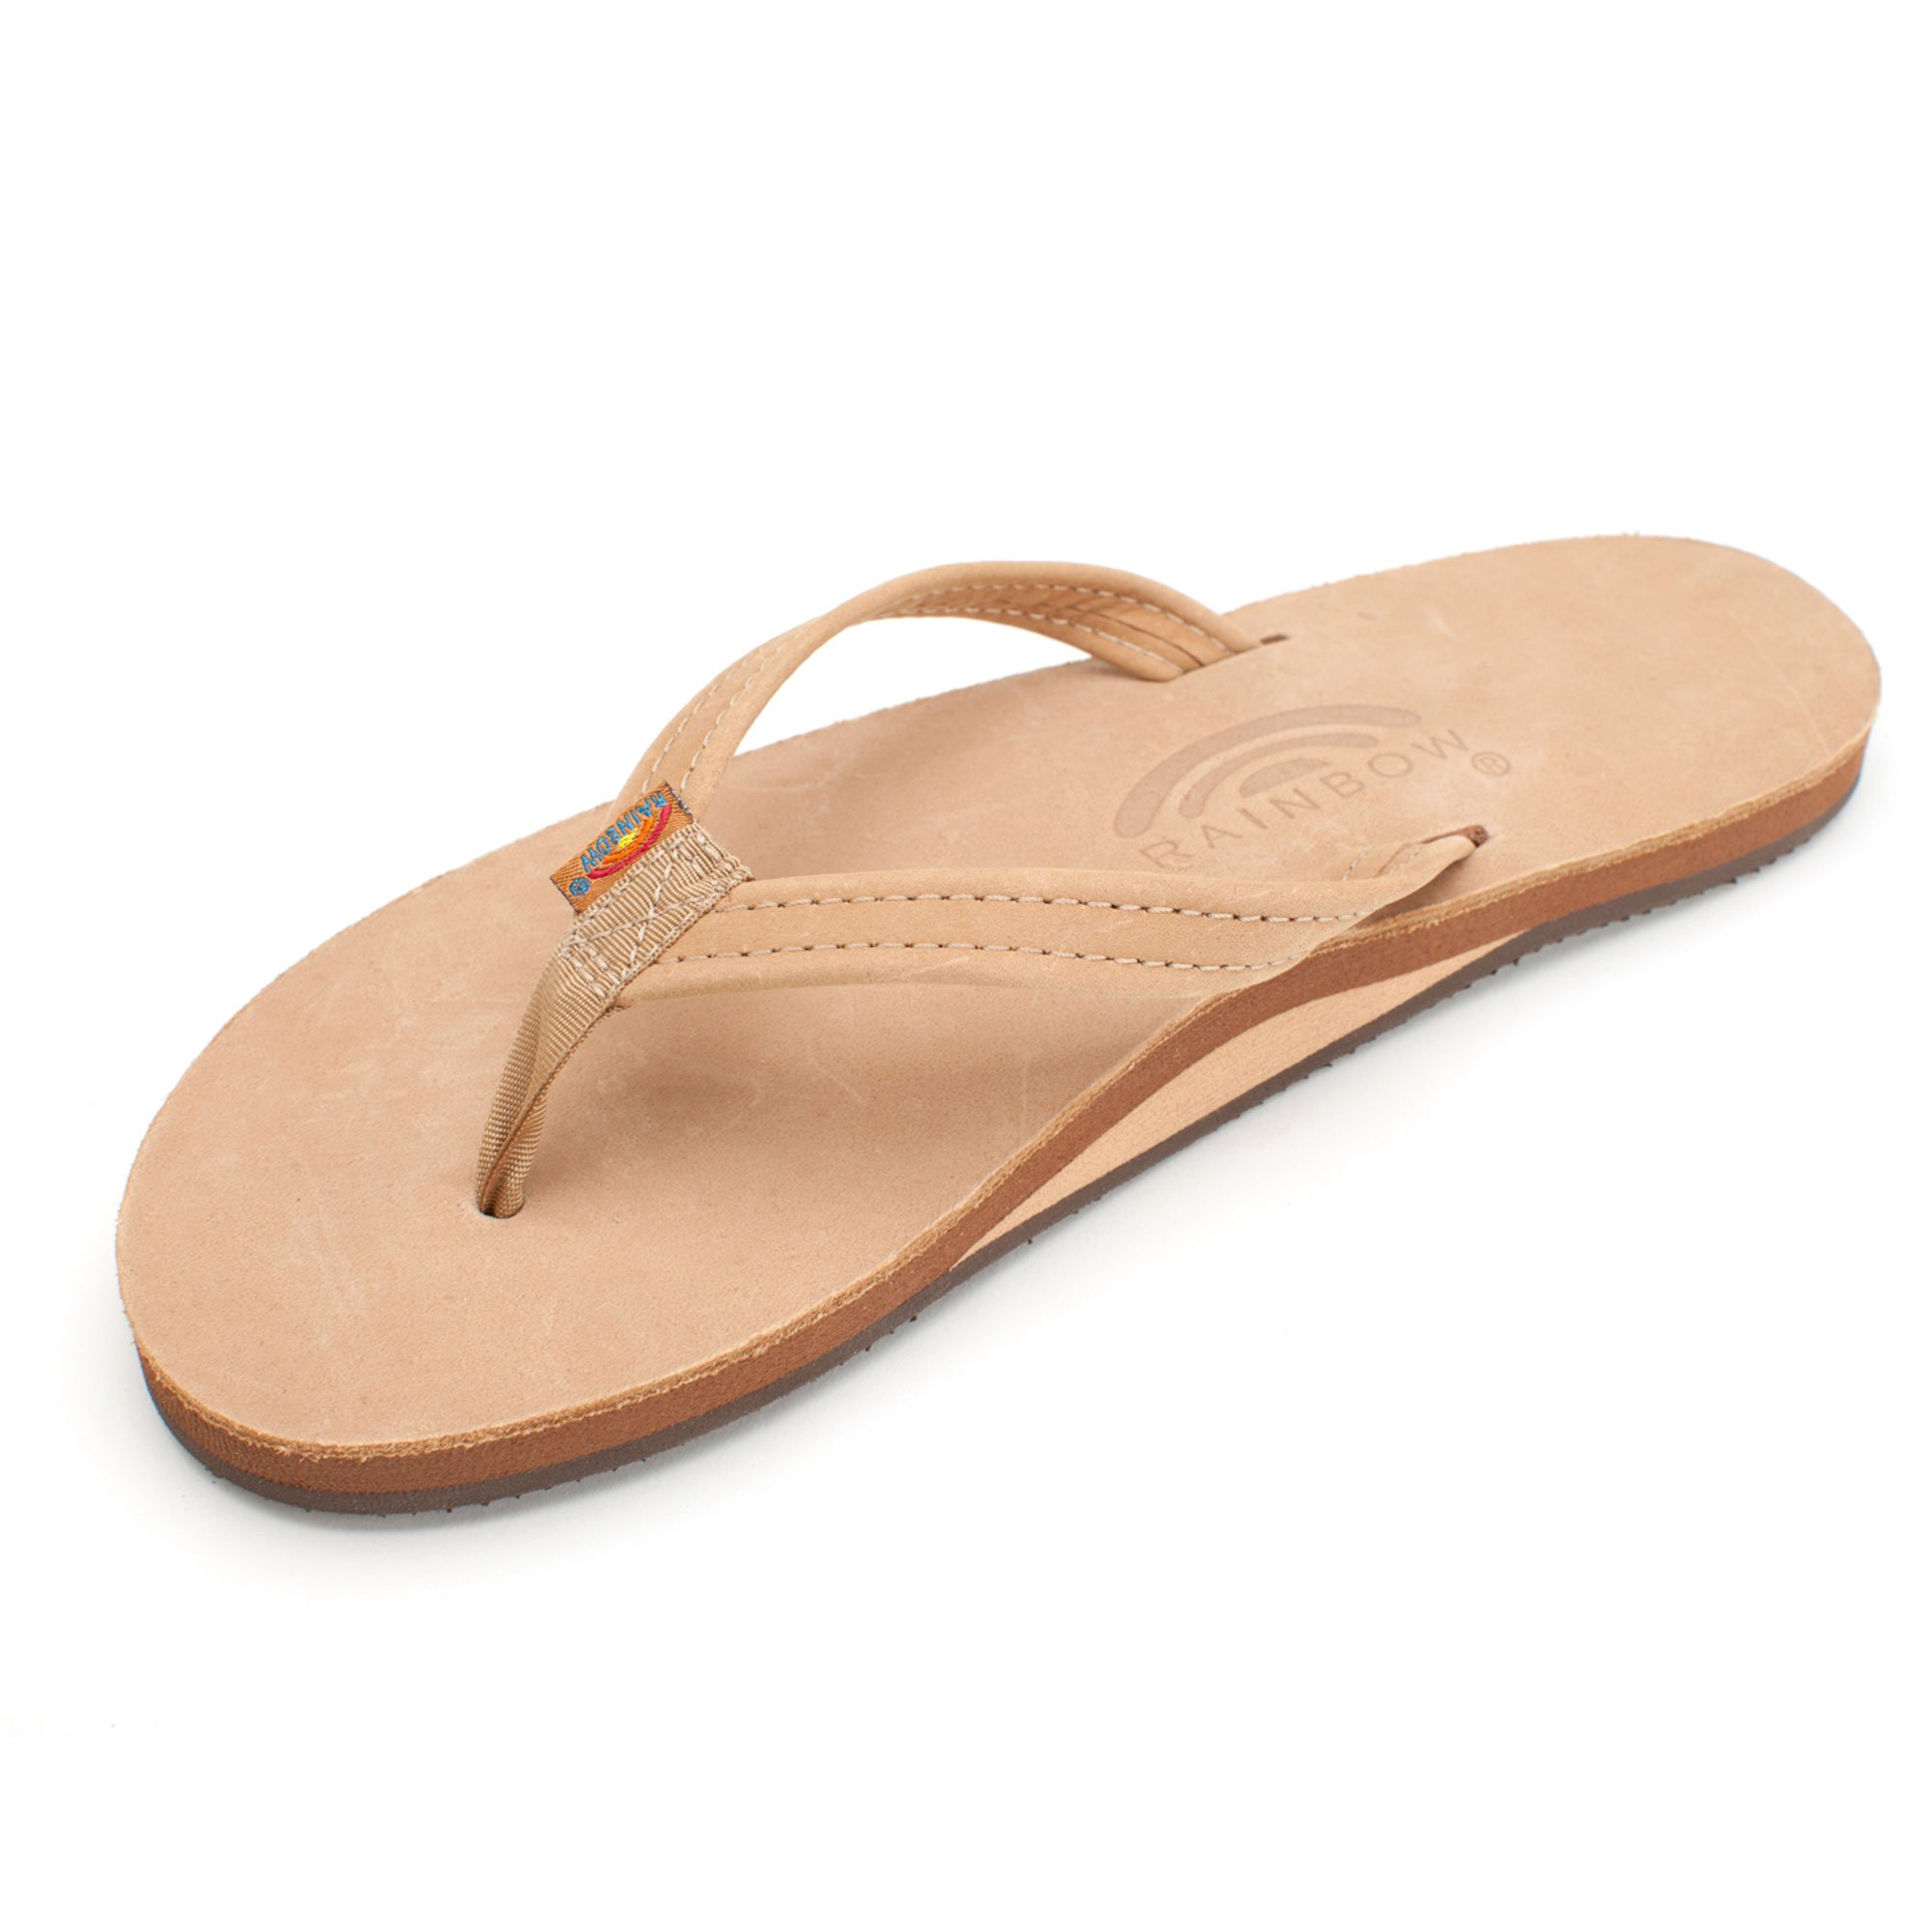 Rainbow Narrow Strap Single Layer Leather Sandal - Women's Premier Sierra Brown 10